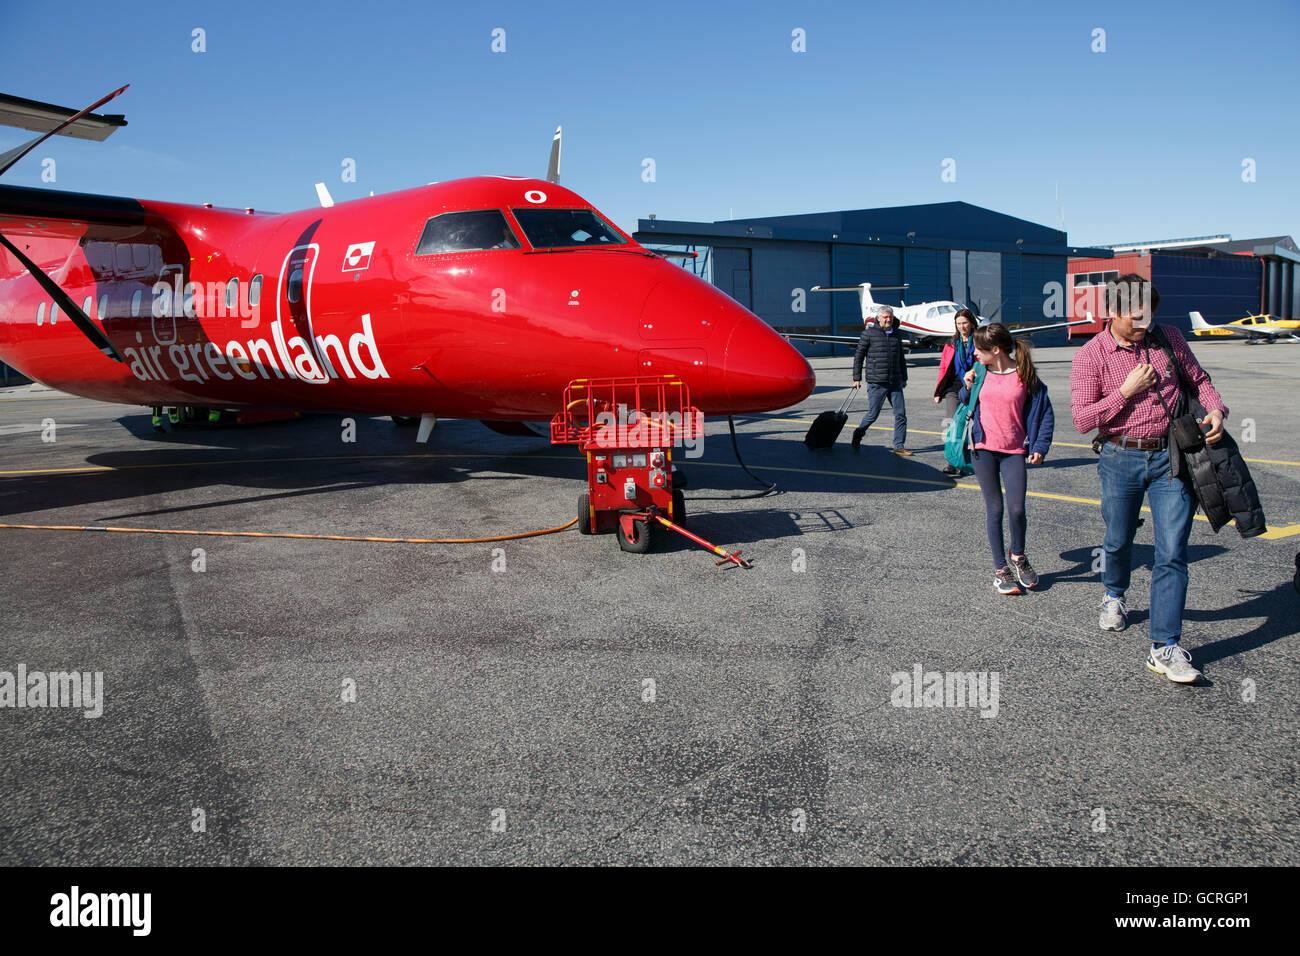 Dash-8 on the tarmac at the airport,  Ilulissat, Greenland - Stock Image